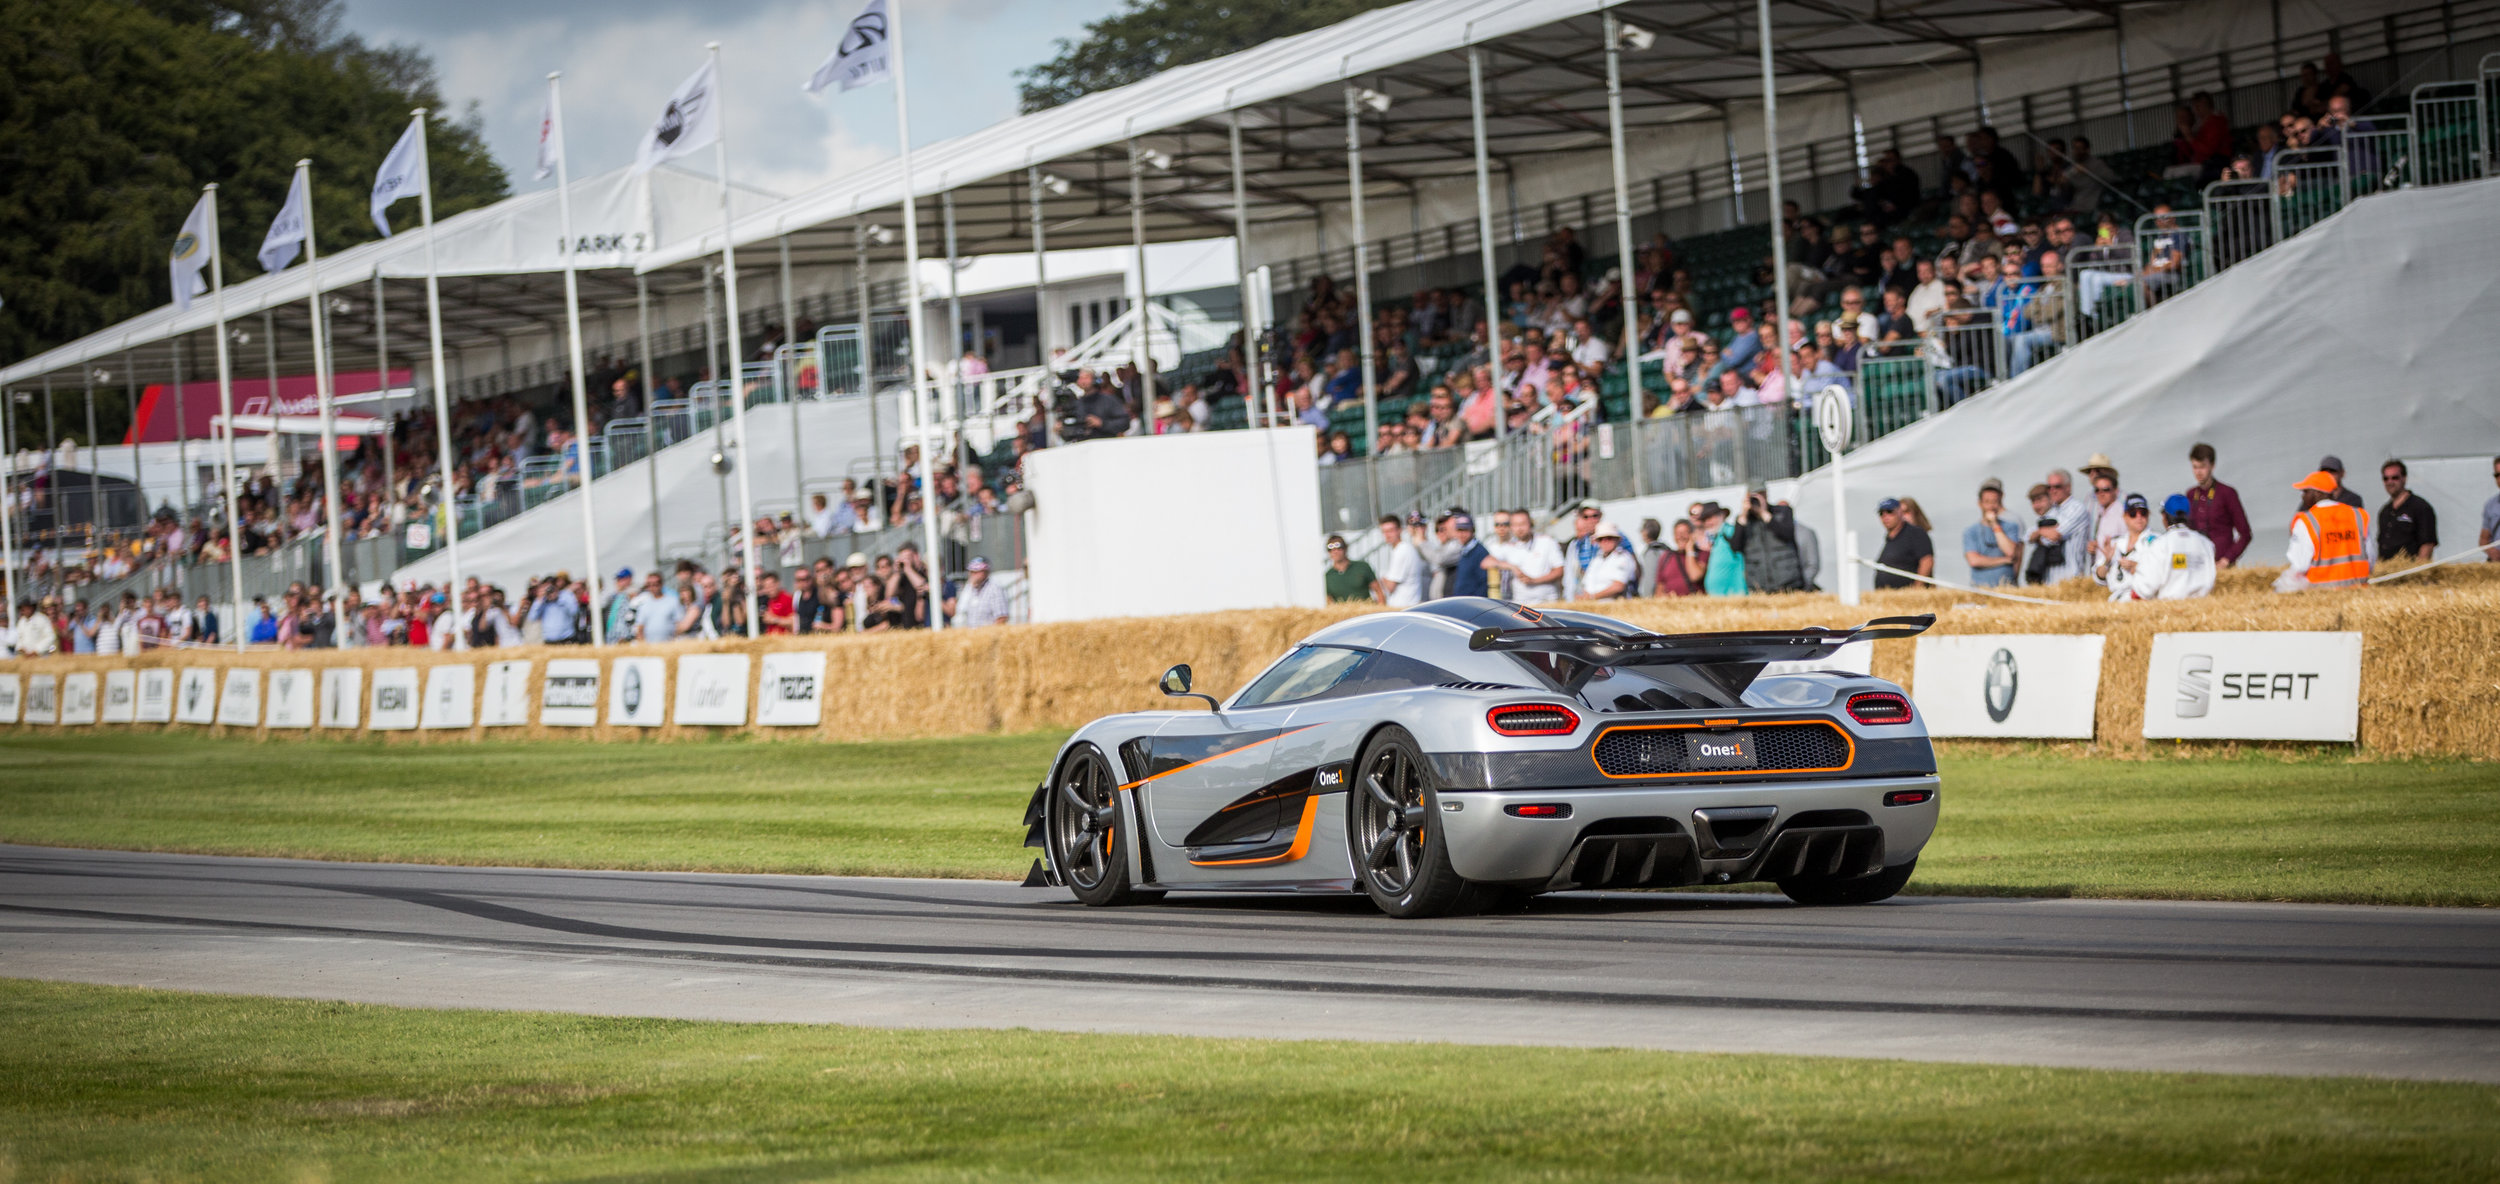 Koenigsegg_(Agera)_One-1_at_Goodwood_2014_009.jpg